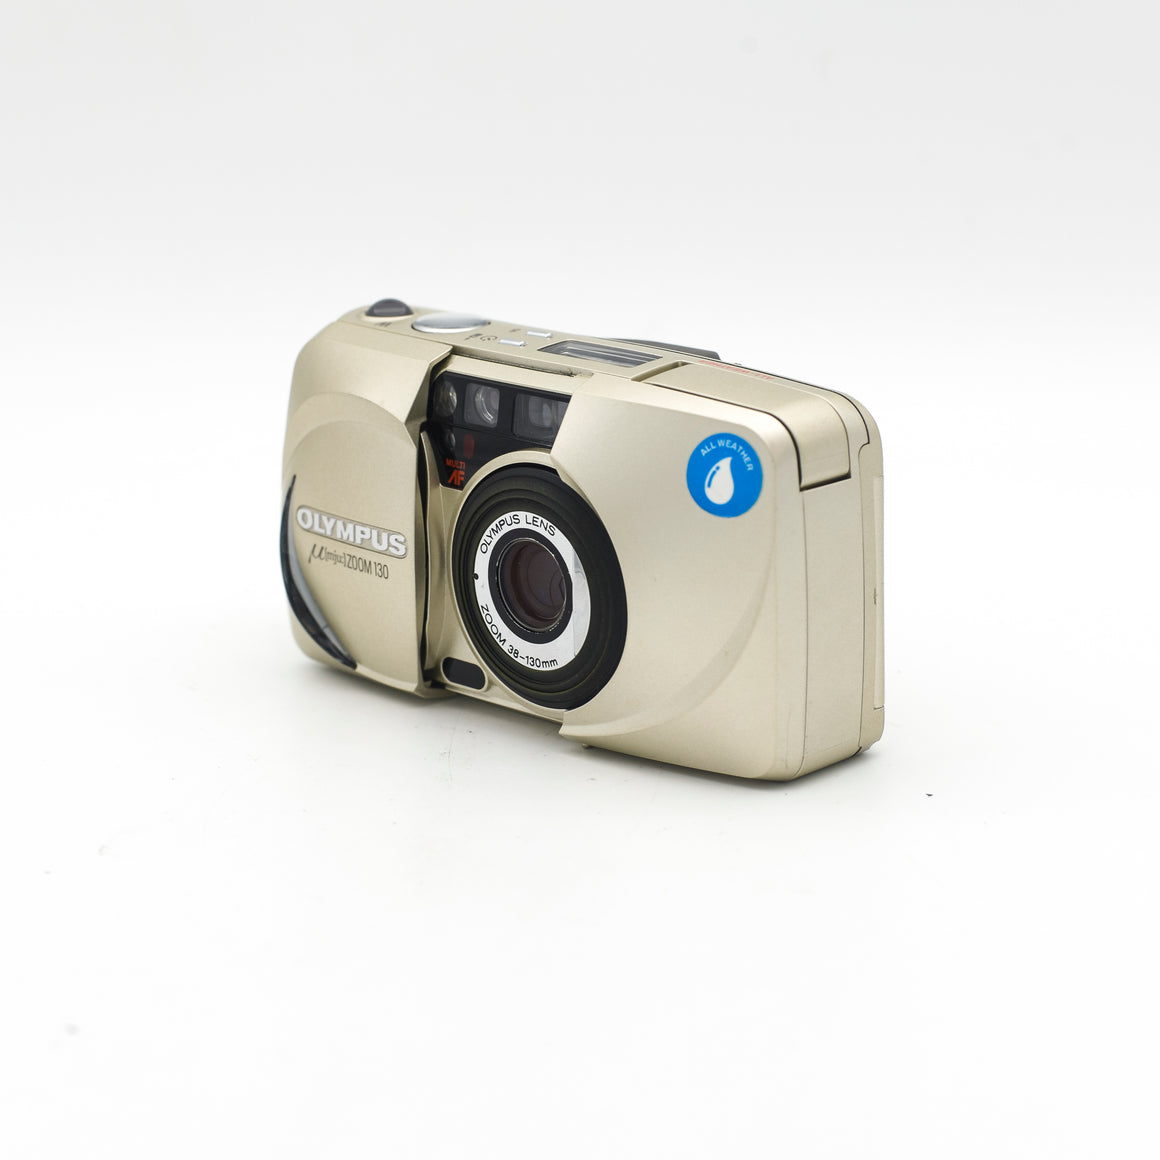 Olympus Mju Zoom 130 Point and Shoot camera